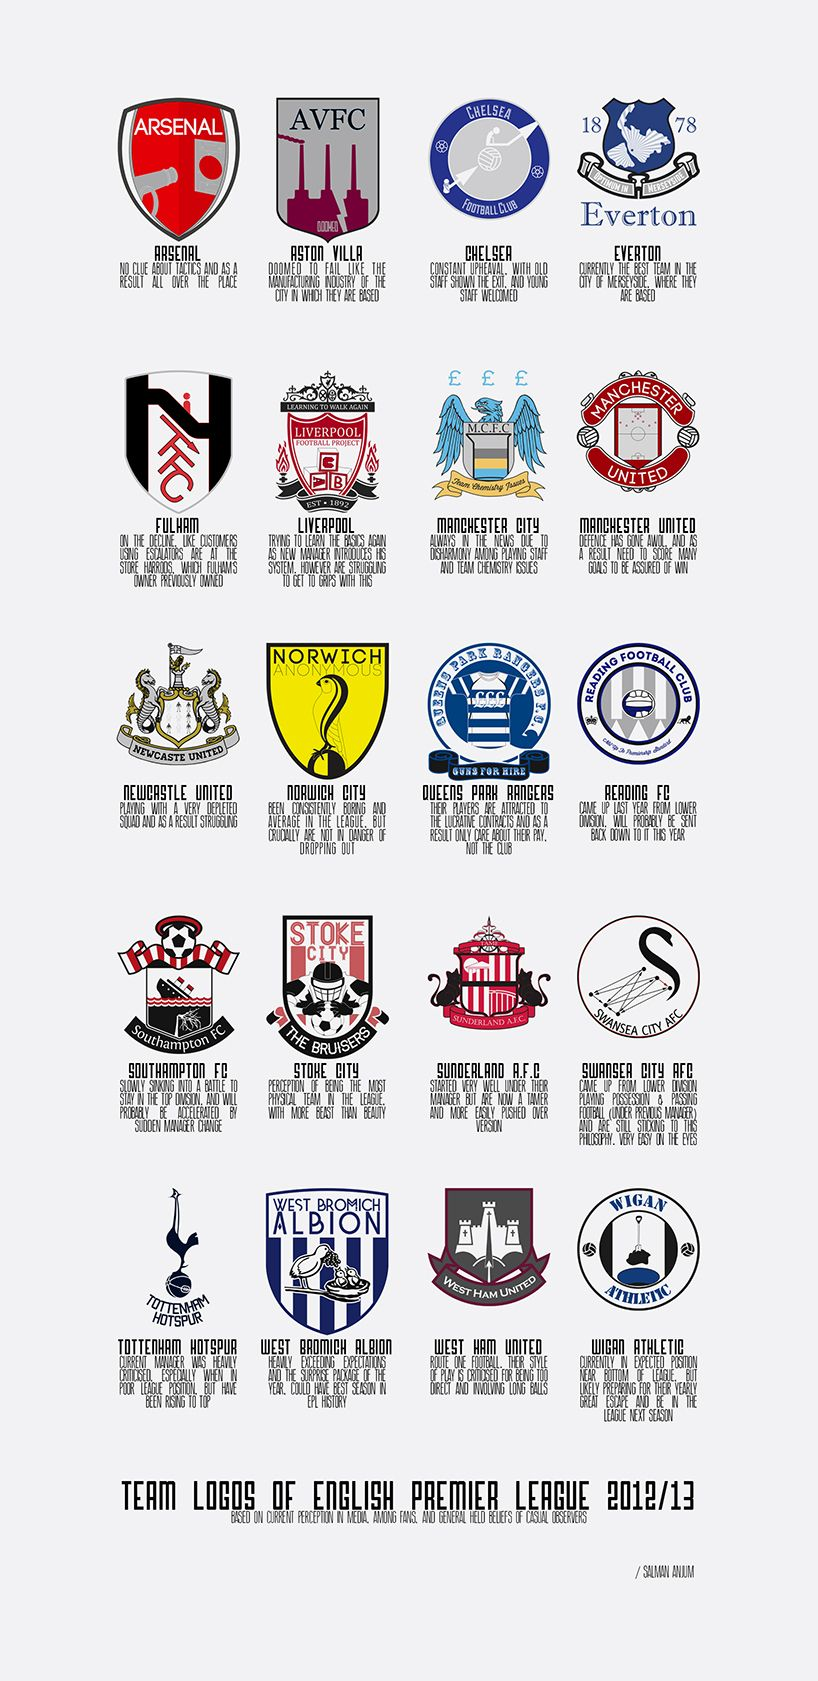 re imagining english premier league football team logos.